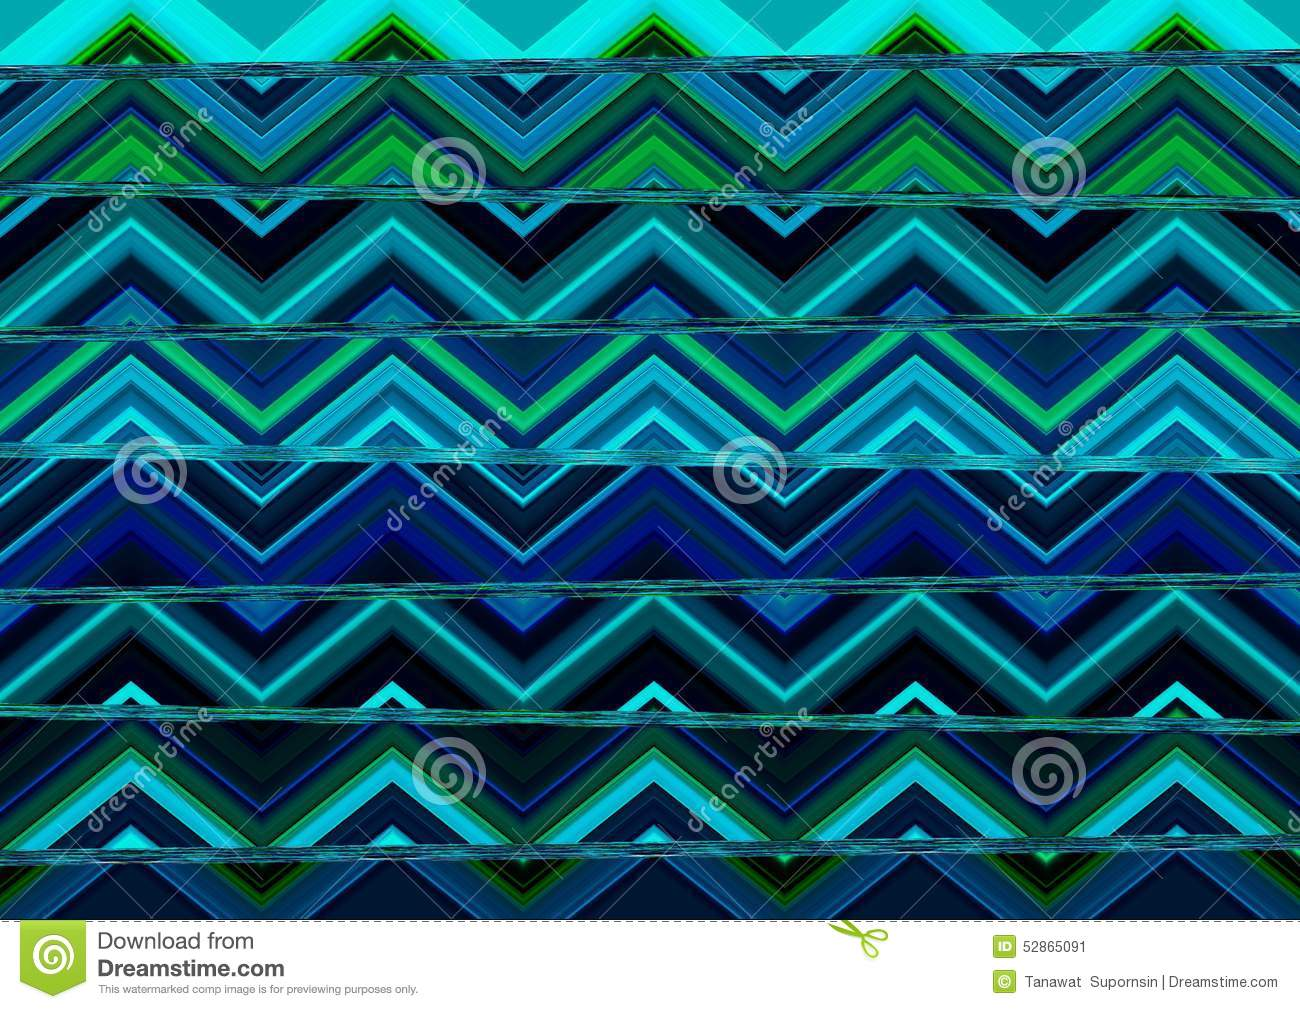 Blue and green pattern wallpaper - photo#29